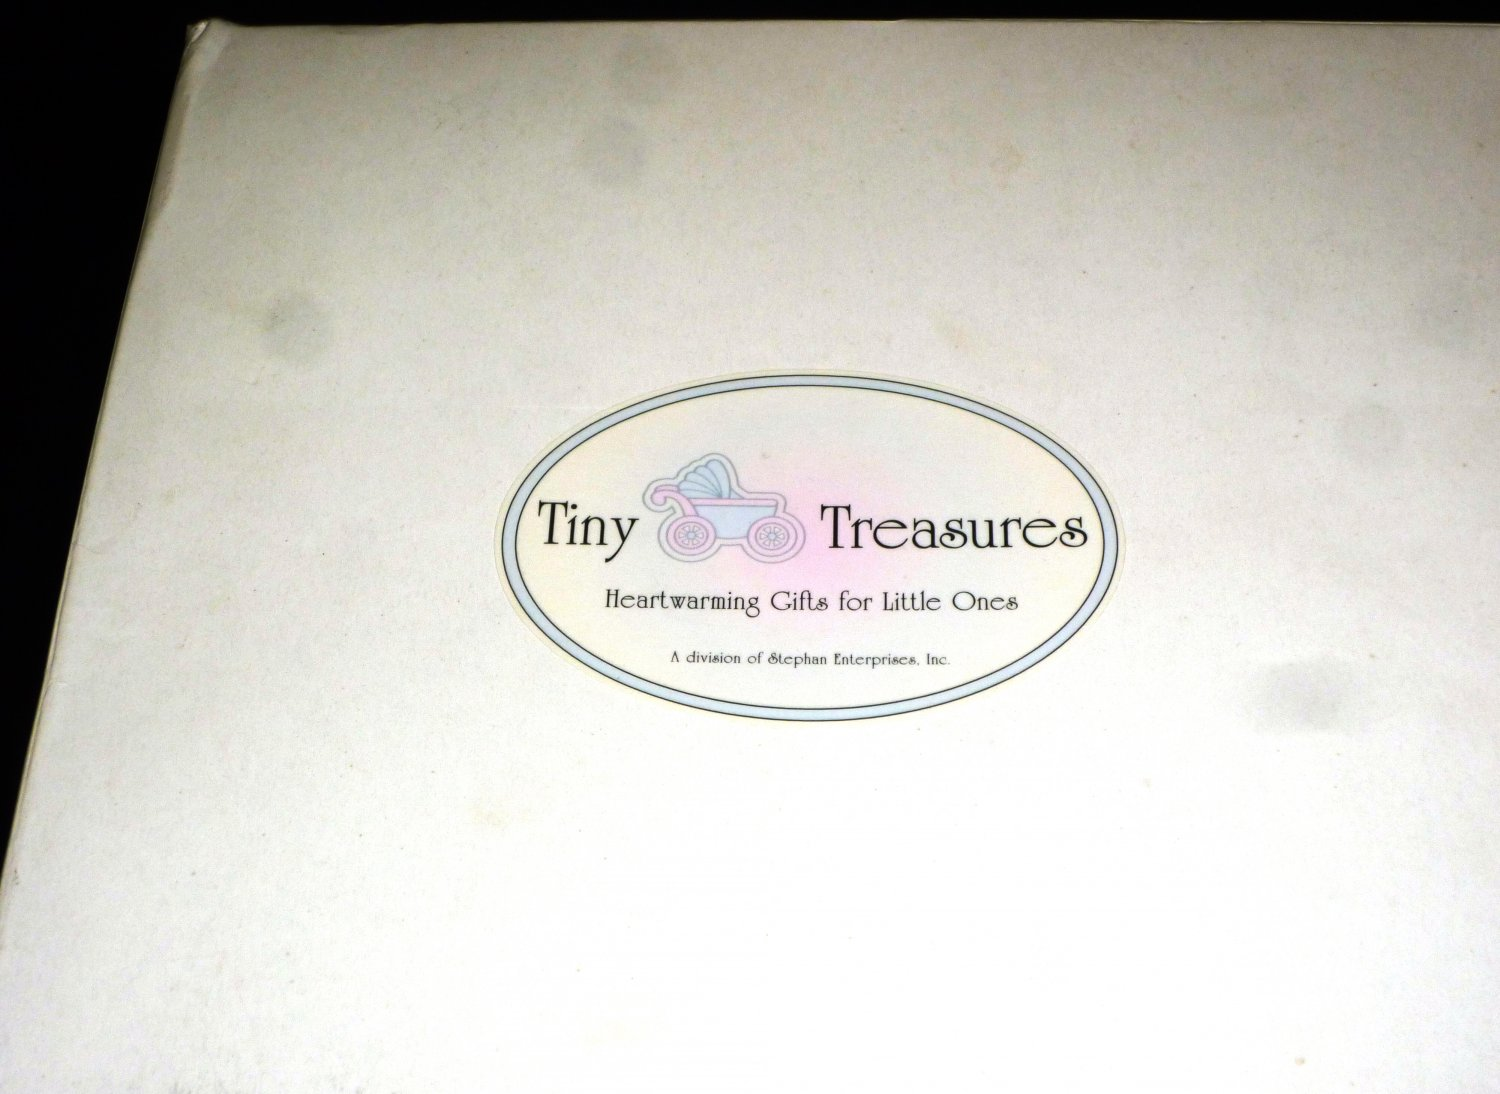 TINY TREASURES SILVERPLATED BABY GIFT SET TEDDY BEAR DECOR FORK SPOON SIPPY CUP